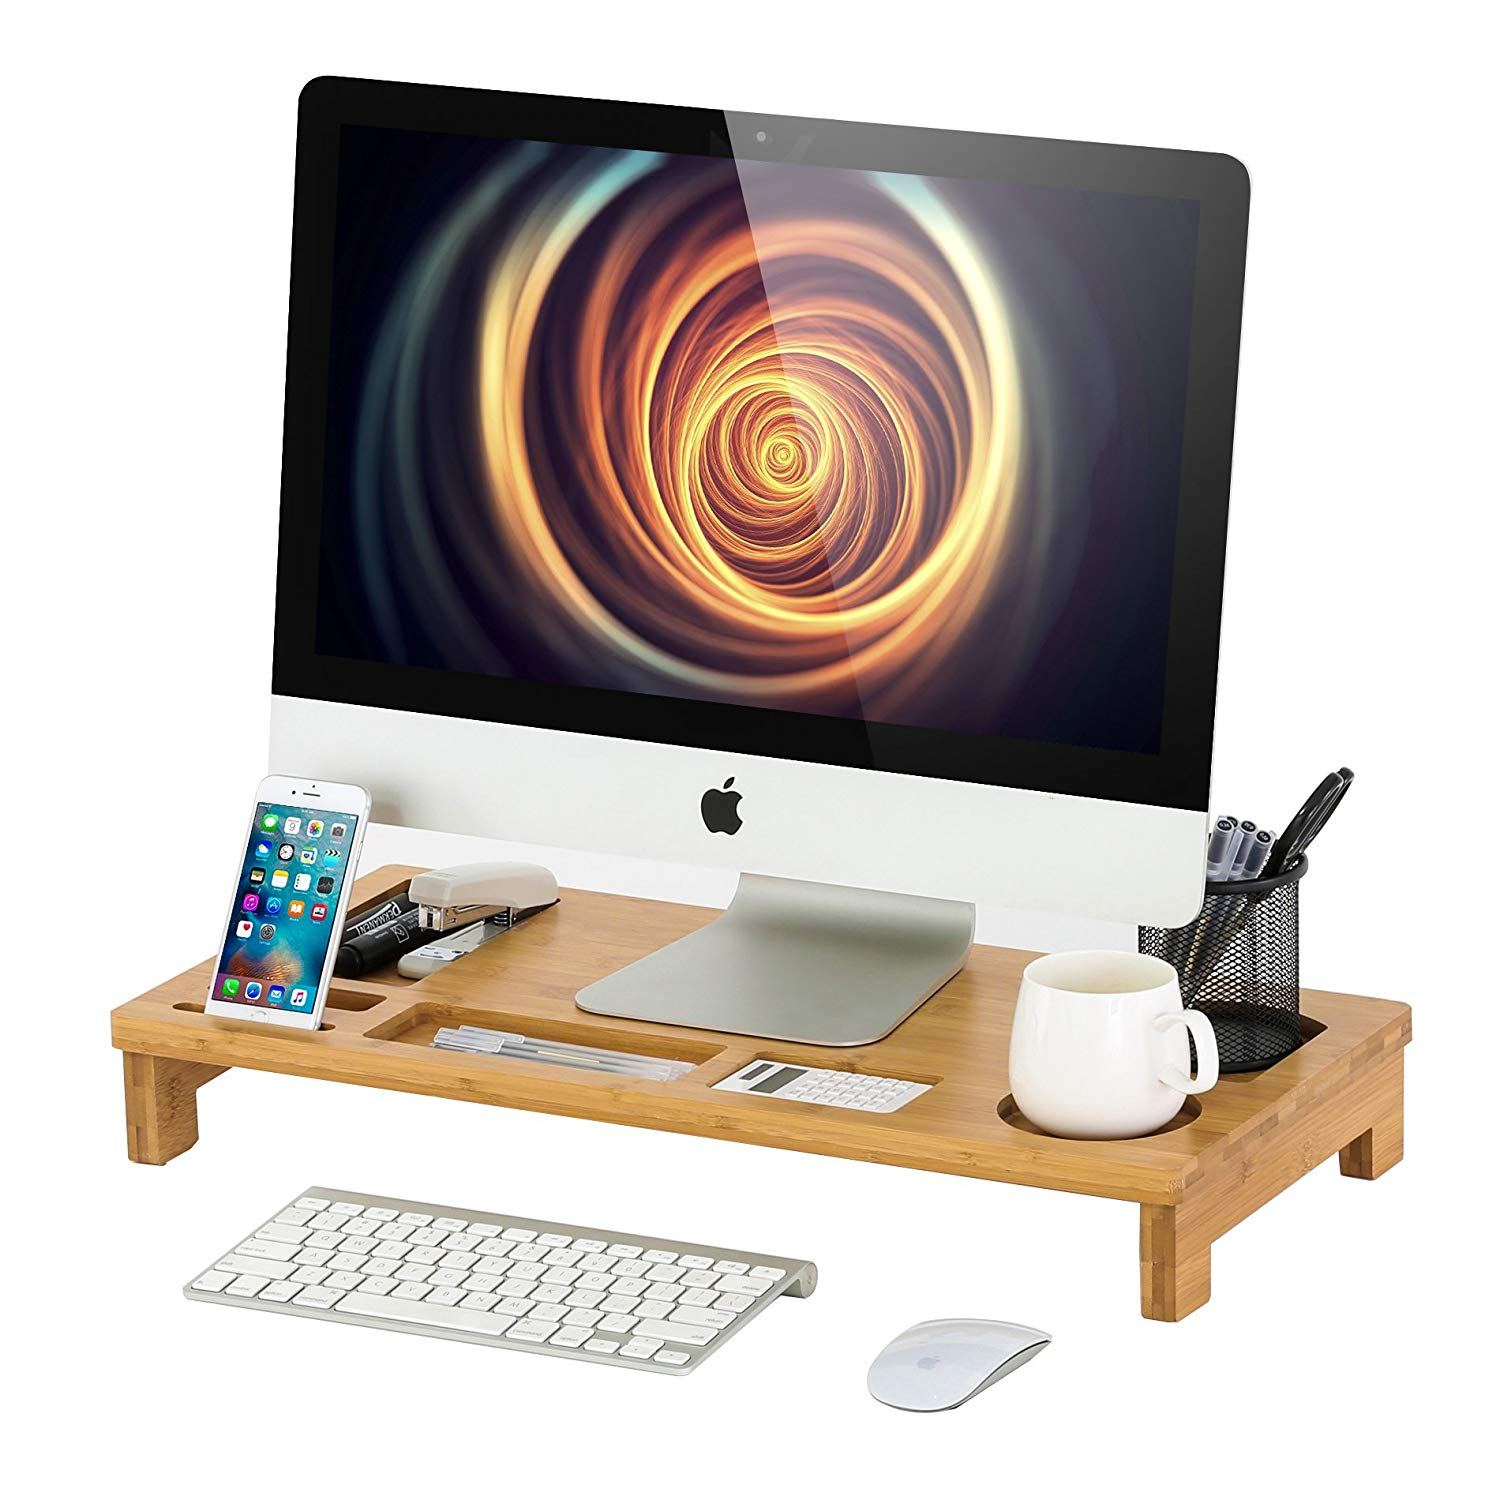 Homury Bamboo Wood Computer Monitor Stand Riser with Storage Organizer Office Desk Laptop Cellphone Desktop TV Printer Stand,Natural